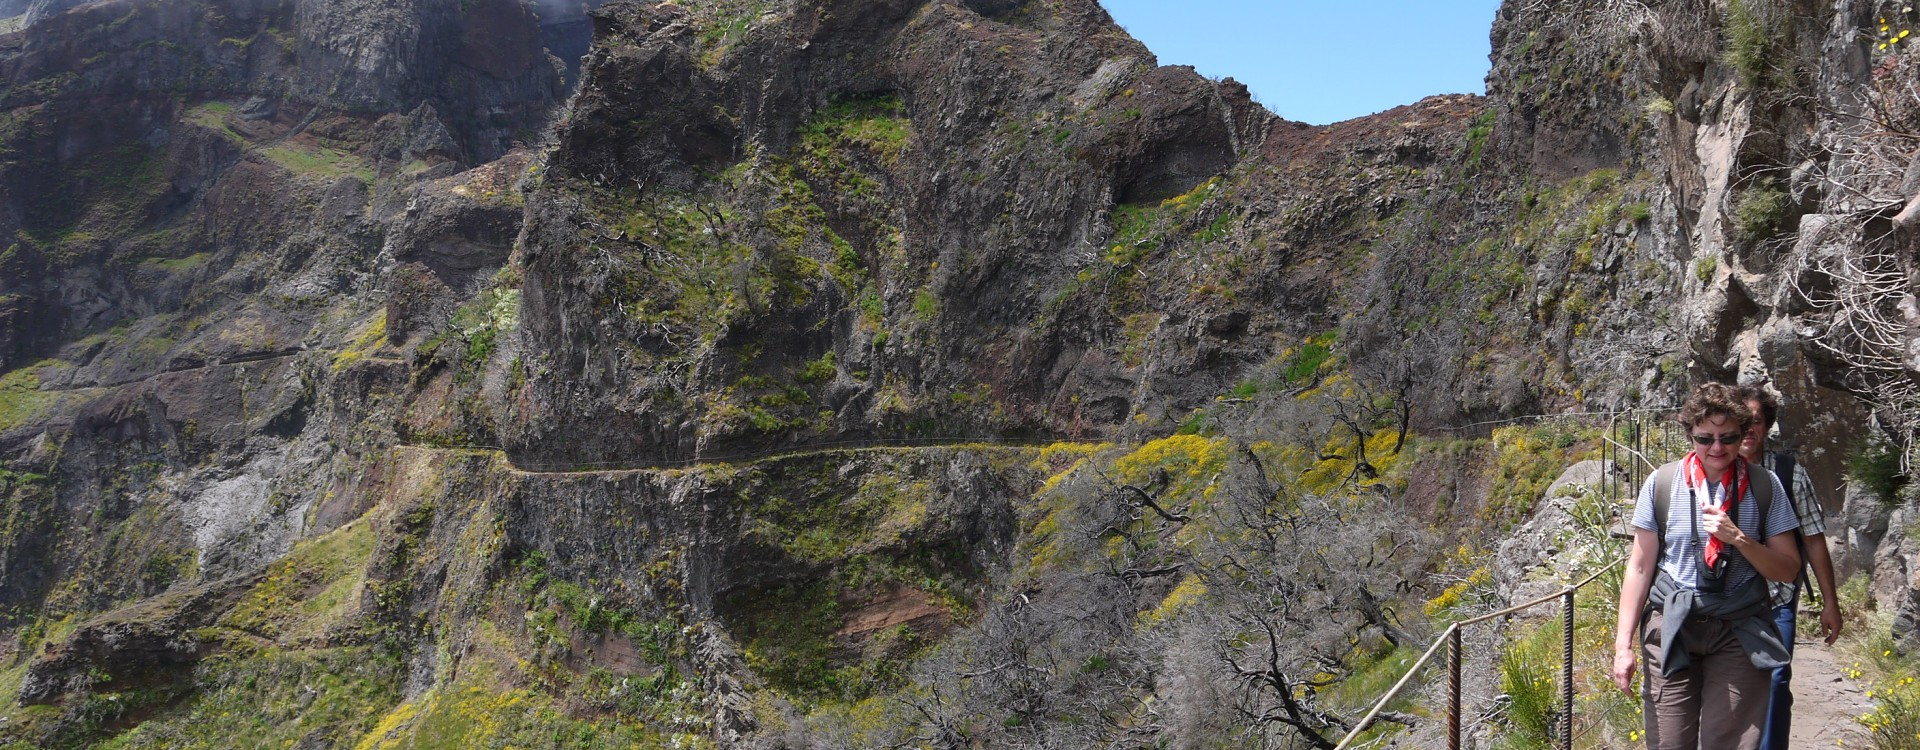 Day walks on the island of Madeira